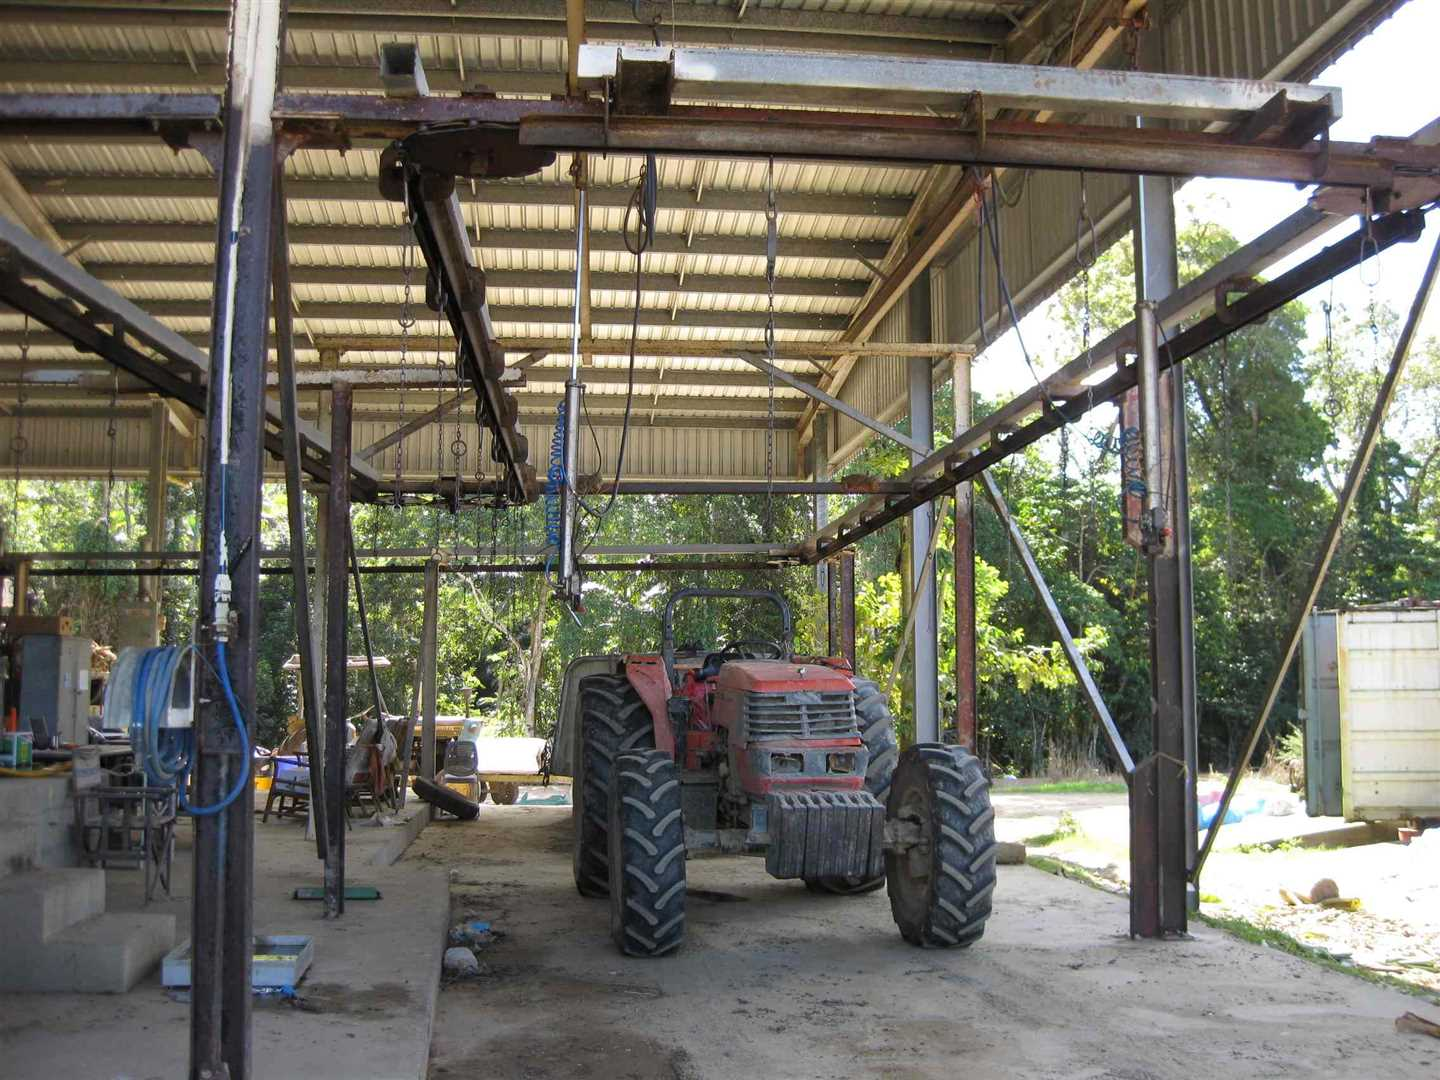 View of part of inside packing shed showing part of banana bunch line with two banana bunch lifting rams